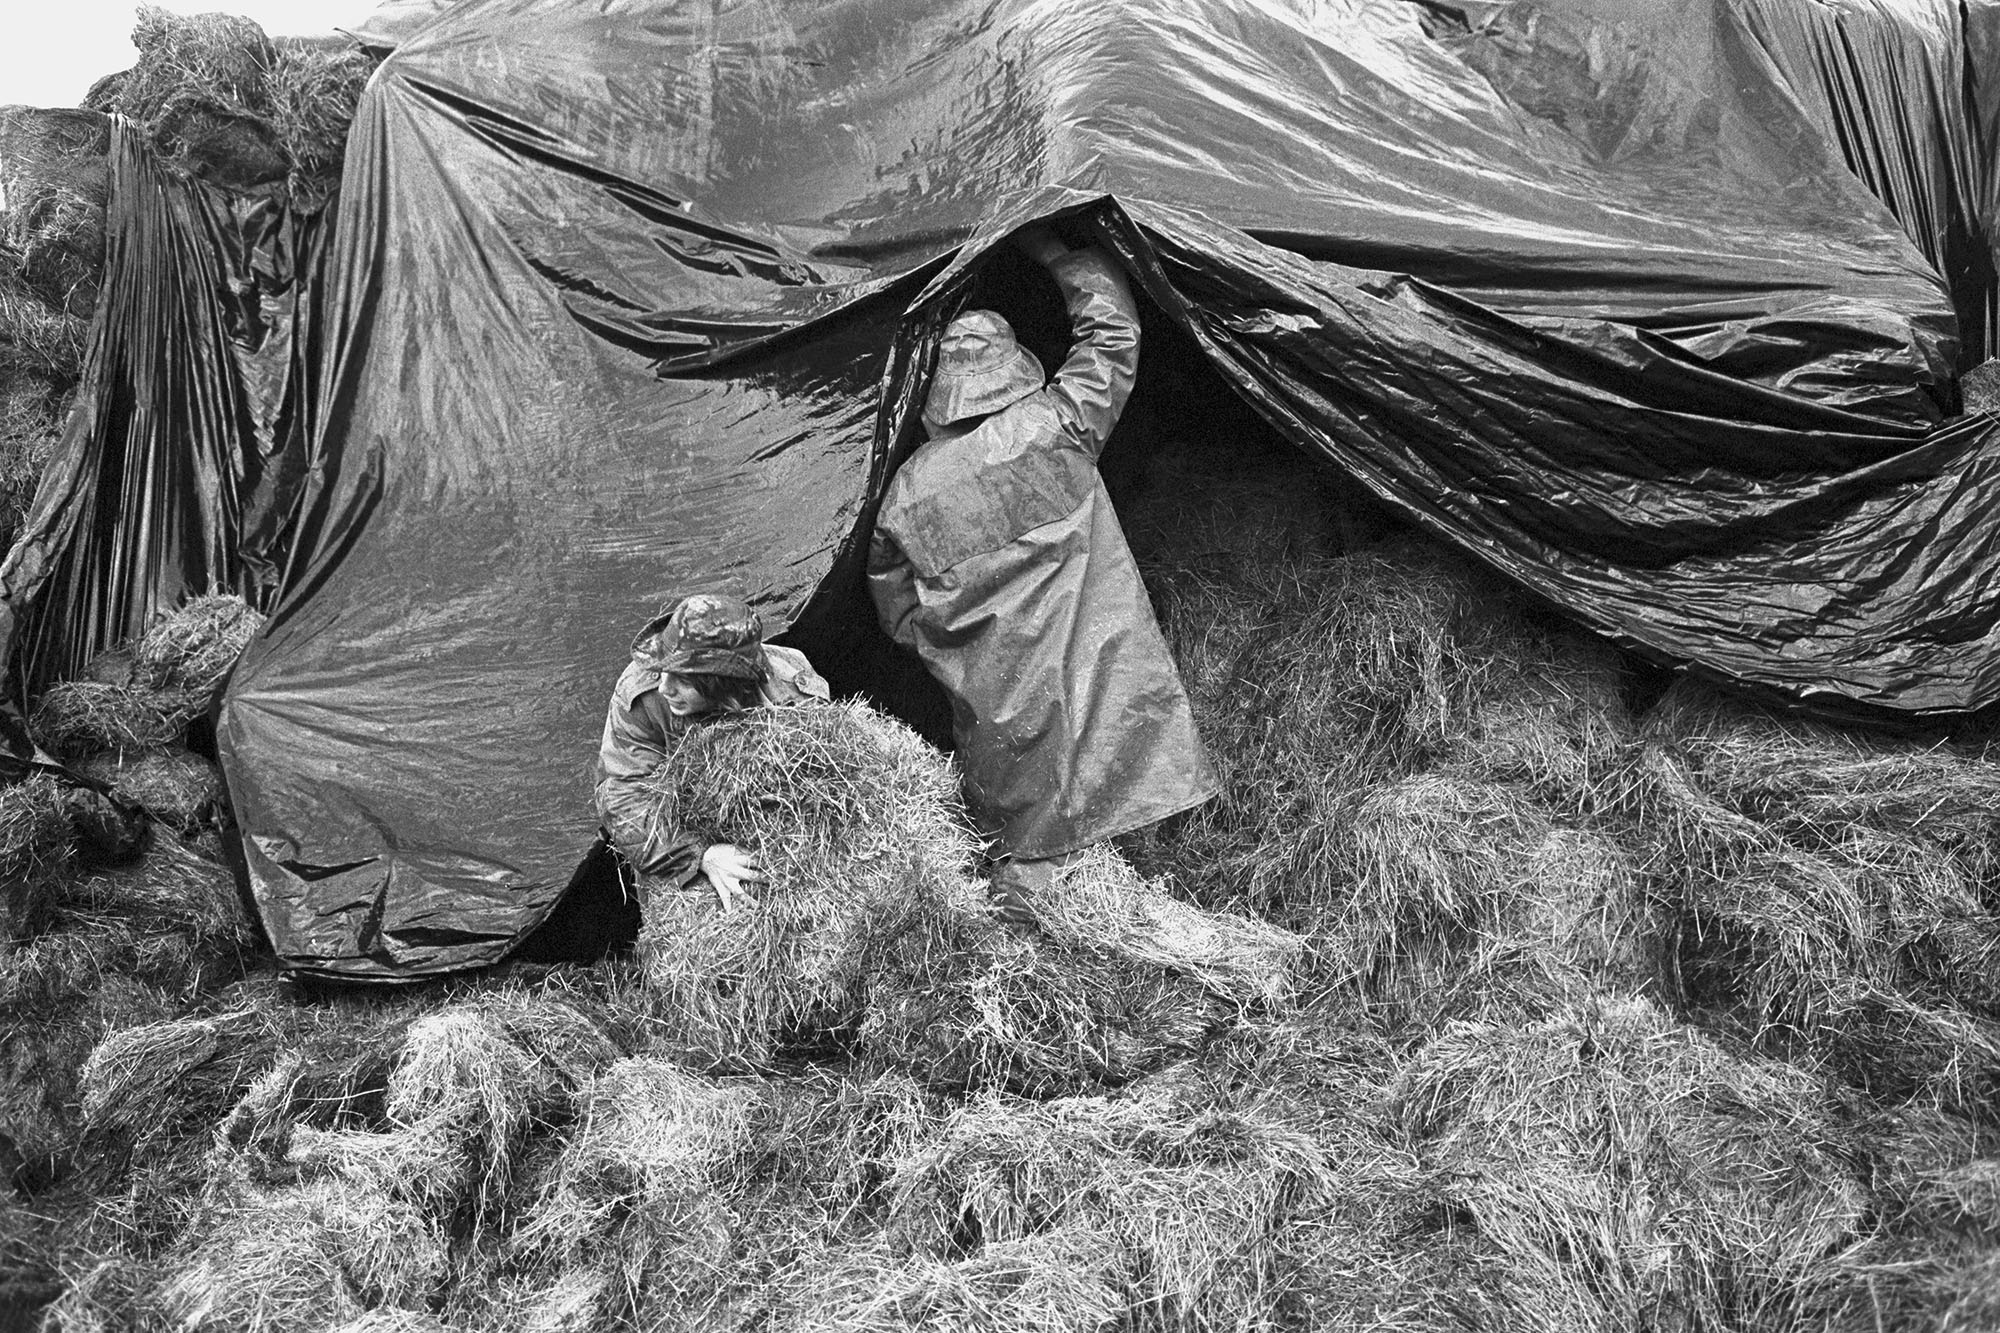 Loading hay in muddy farmyard, polythene cover.<br /> [A boy helping his father load hay onto a trailer to take to feed cattle at Lower Hewton, Okehampton. The hay is covered by a polythene sheet.]